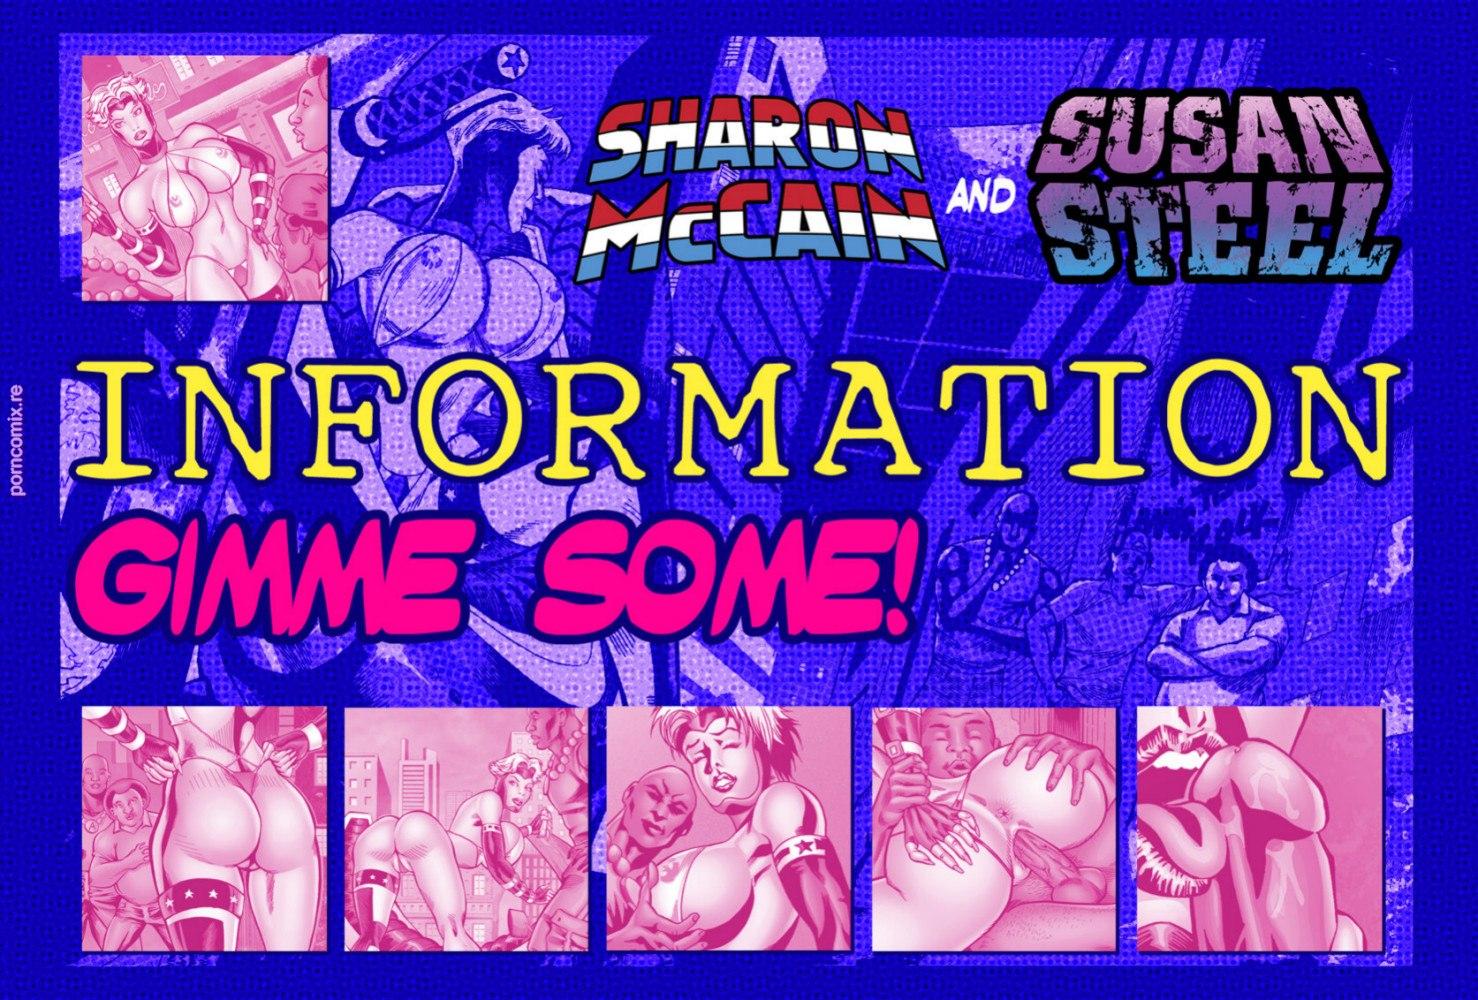 Sharon MacCain in Information- Gimme Some! porn comics 8 muses